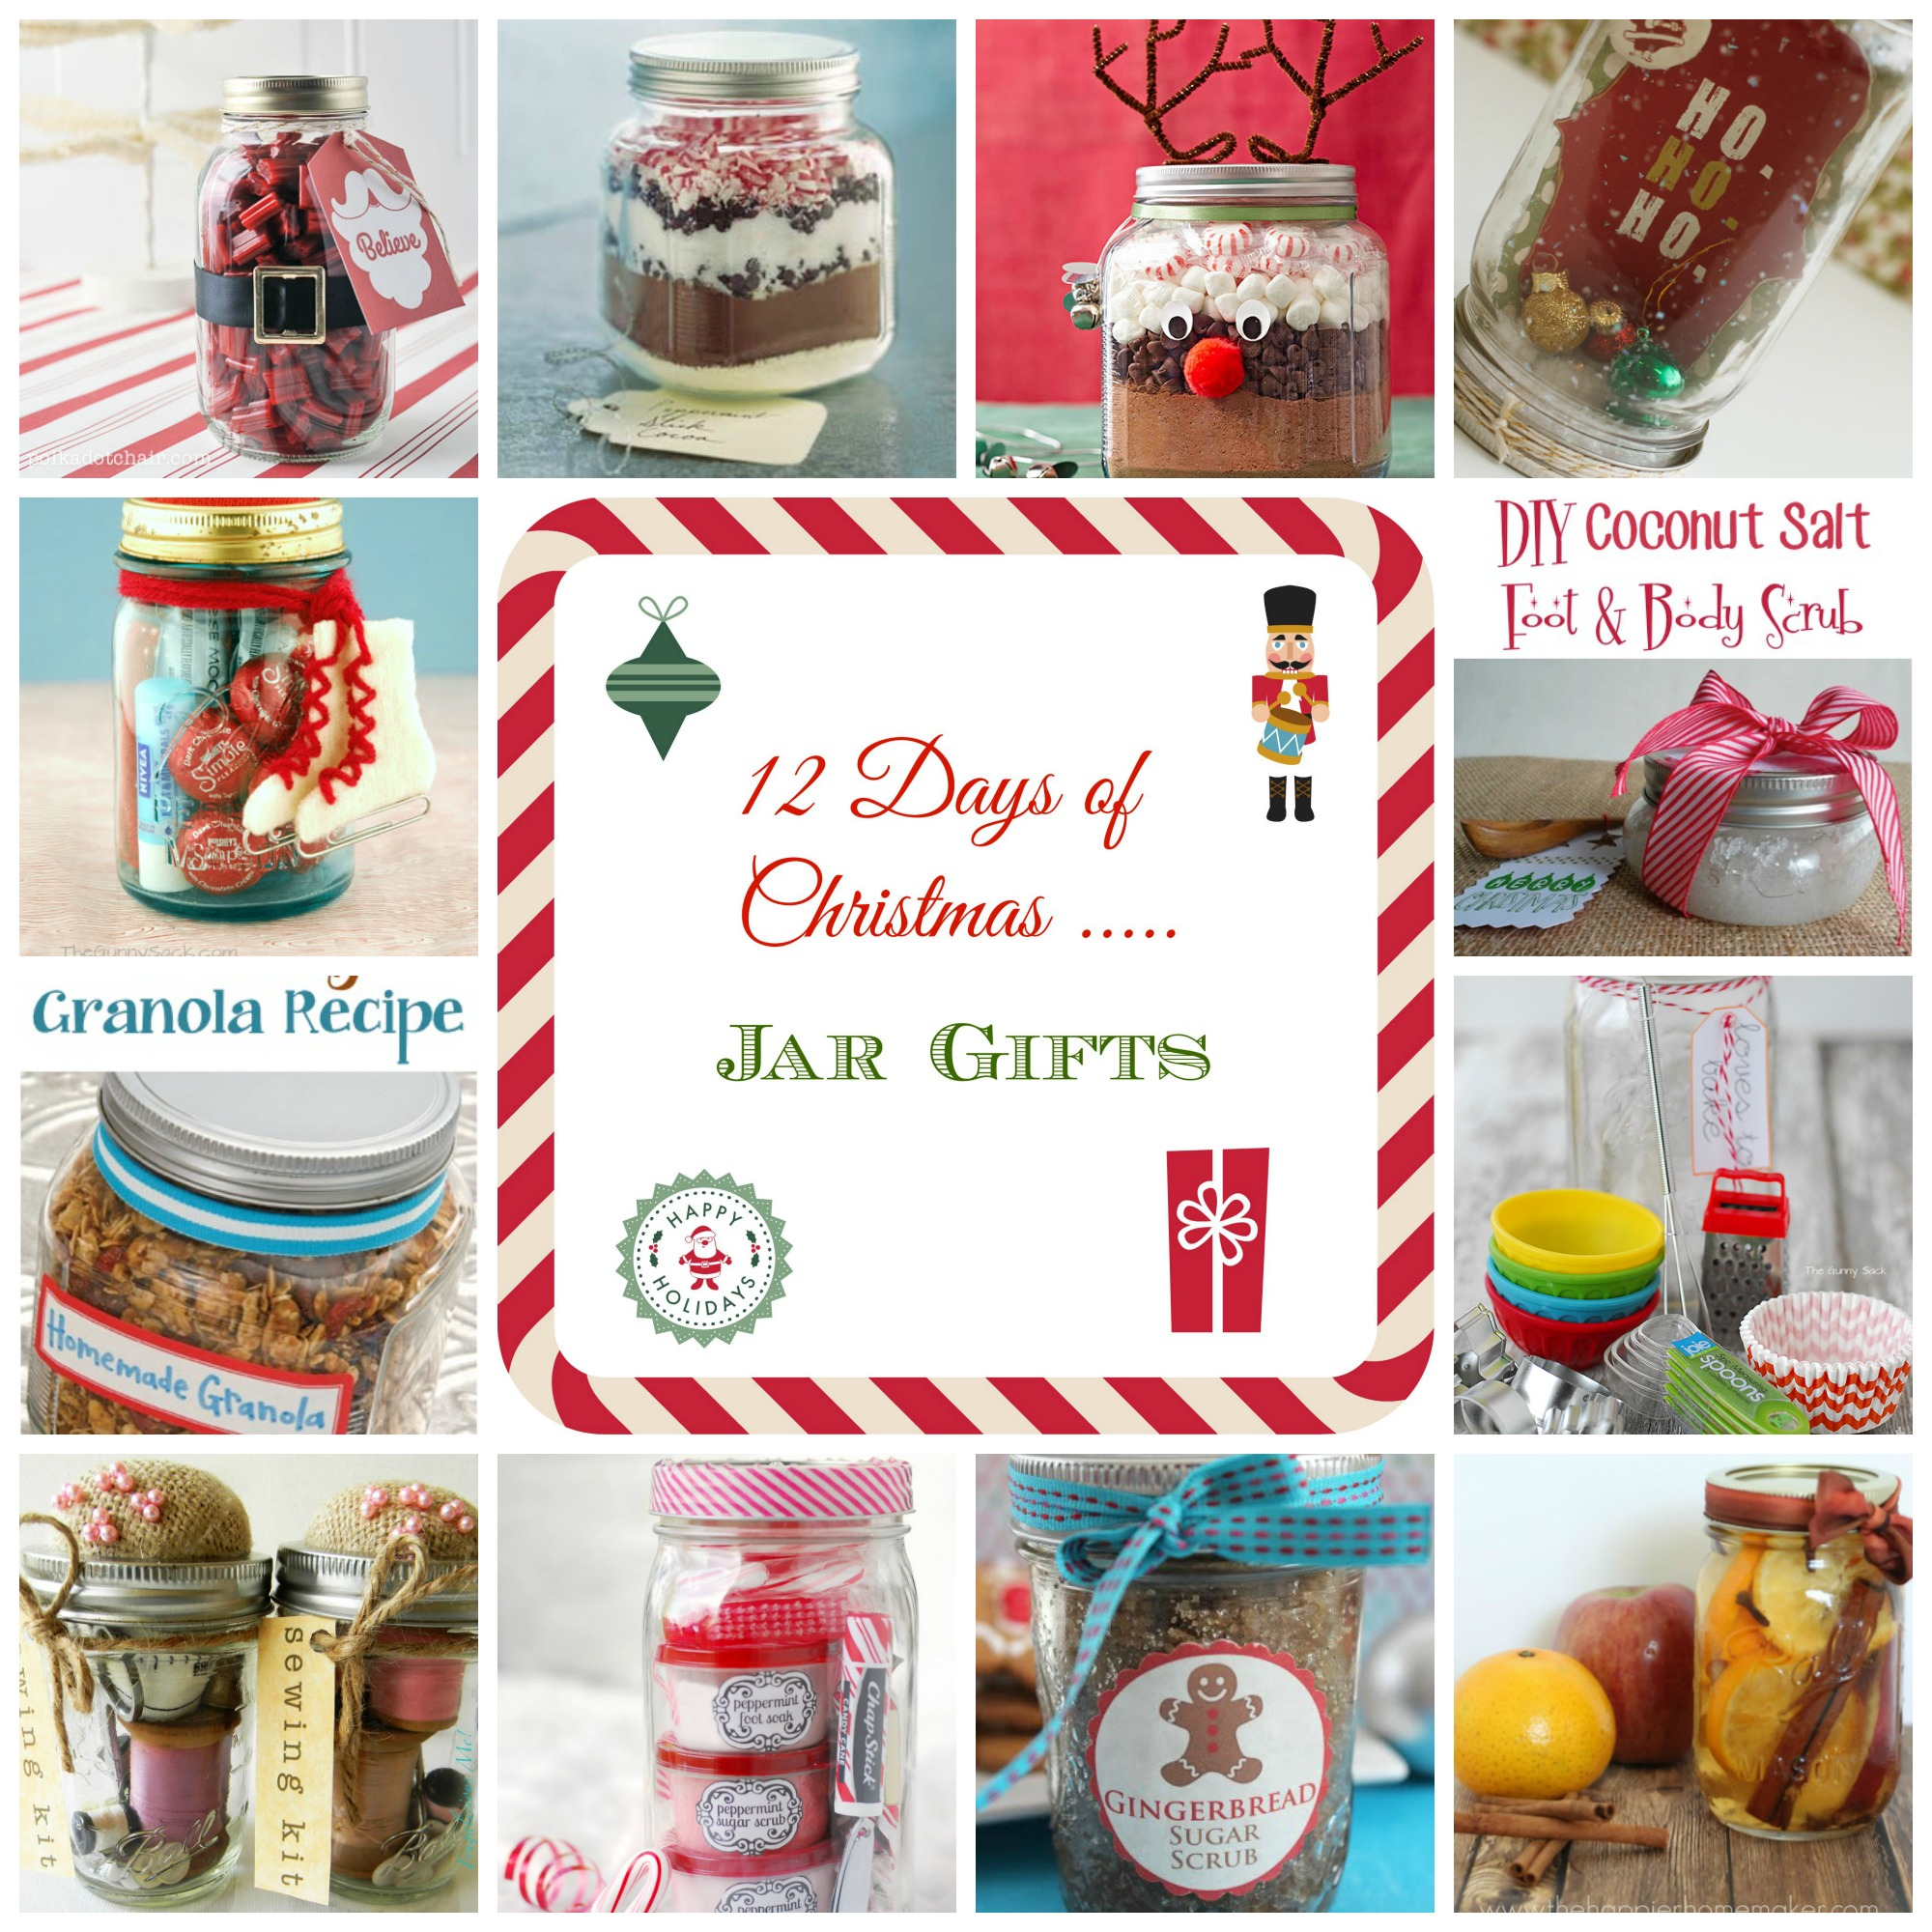 12 Days of Christmas – Jar Gifts